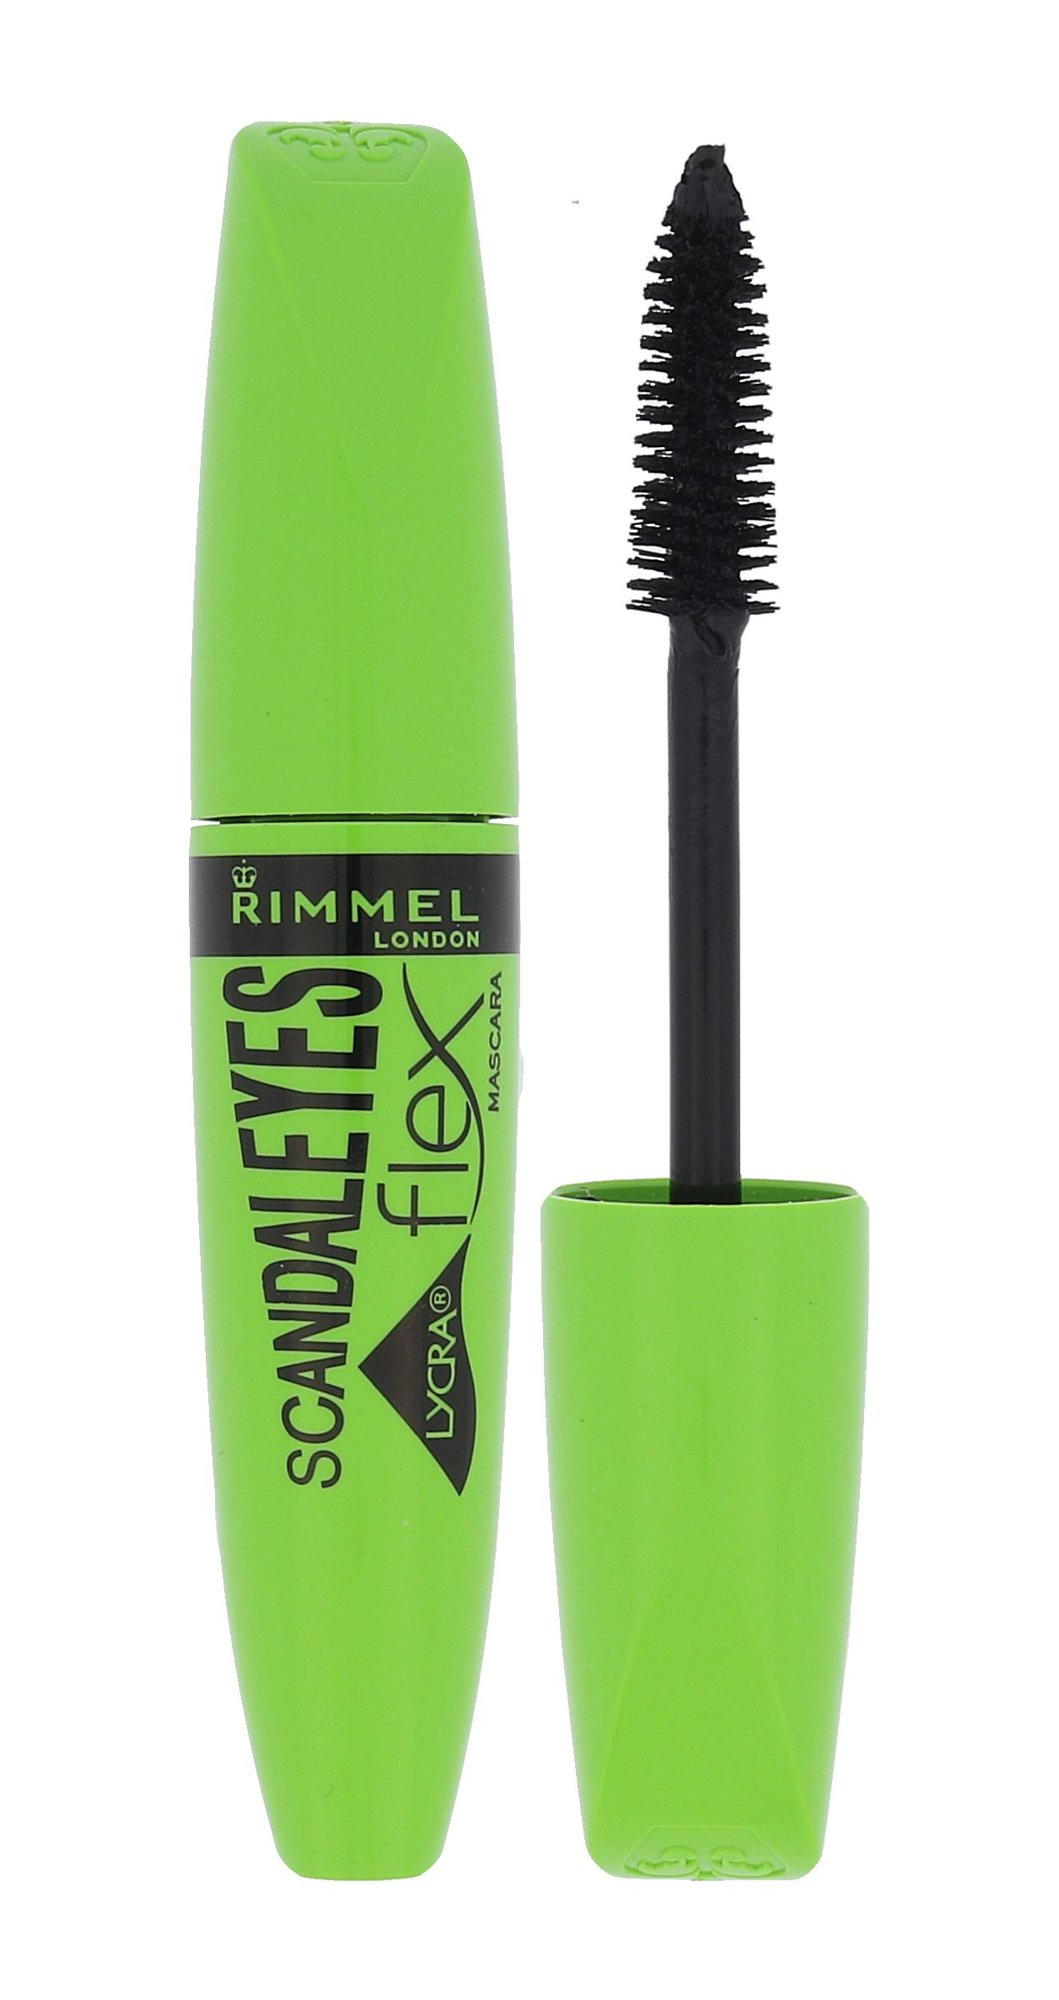 Rimmel London Mascara Scandal Eyes Lycra Flex Cosmetic 12ml 001 Black